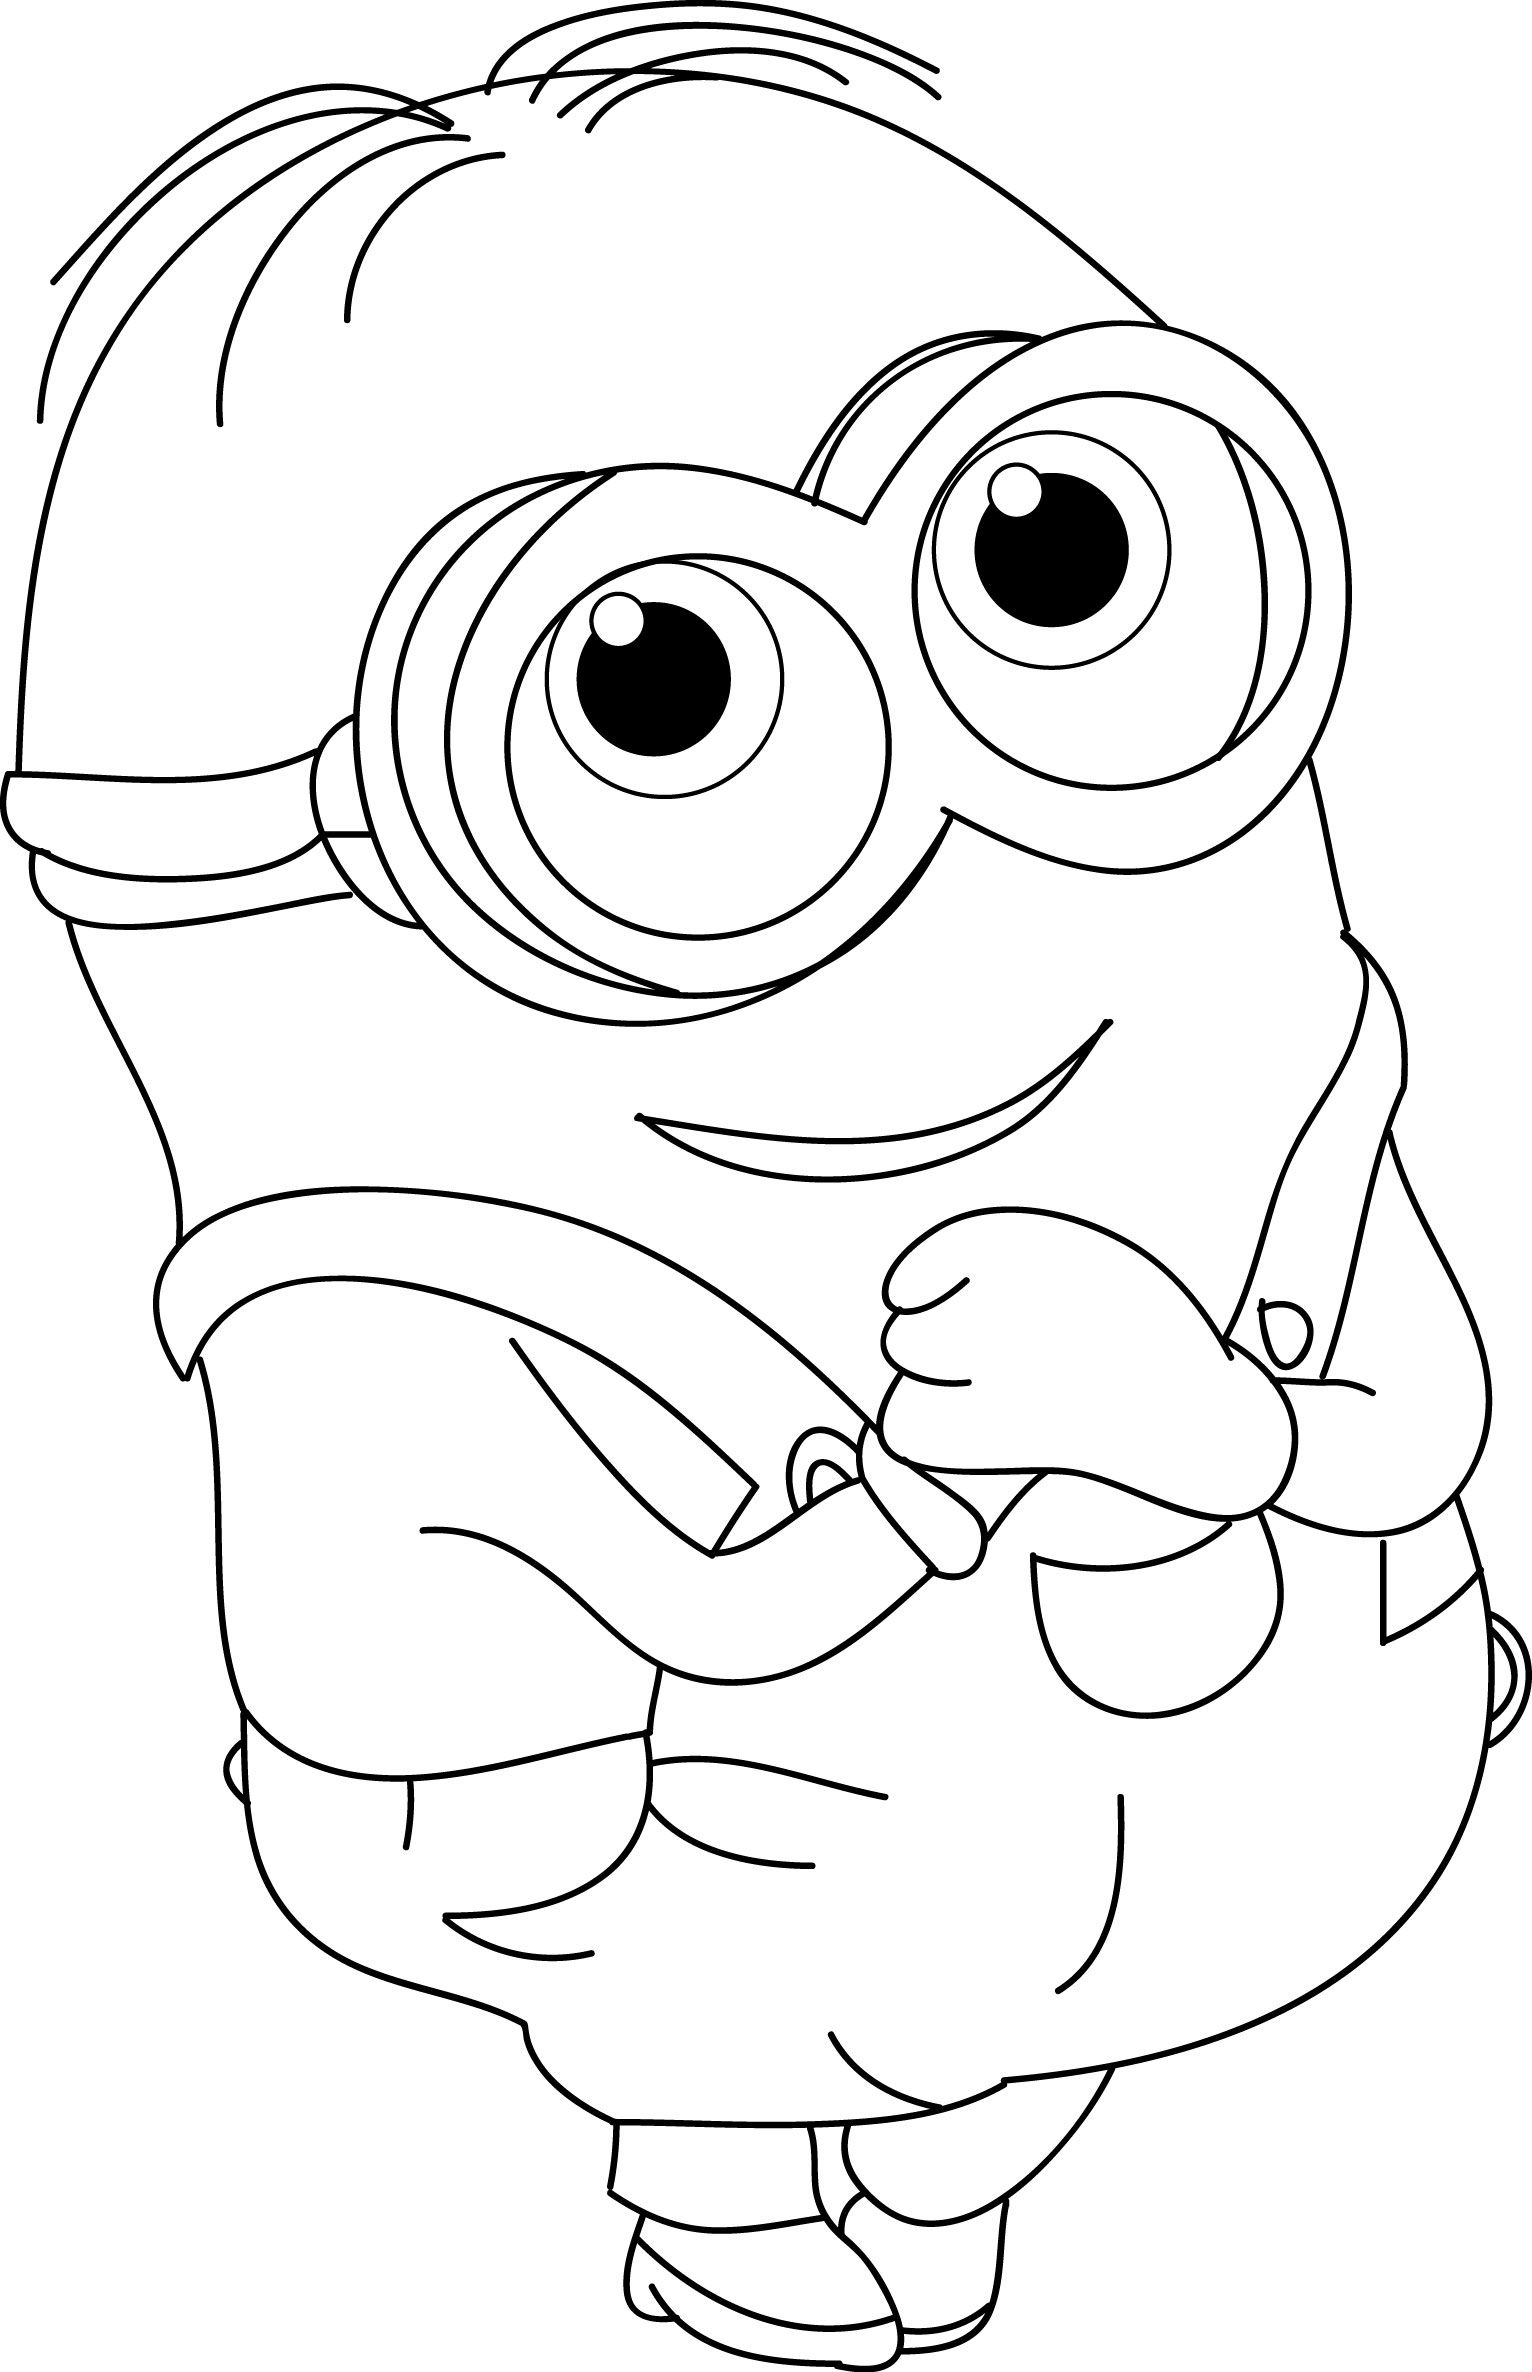 minion s very cute coloring page riscos bebe pinterest